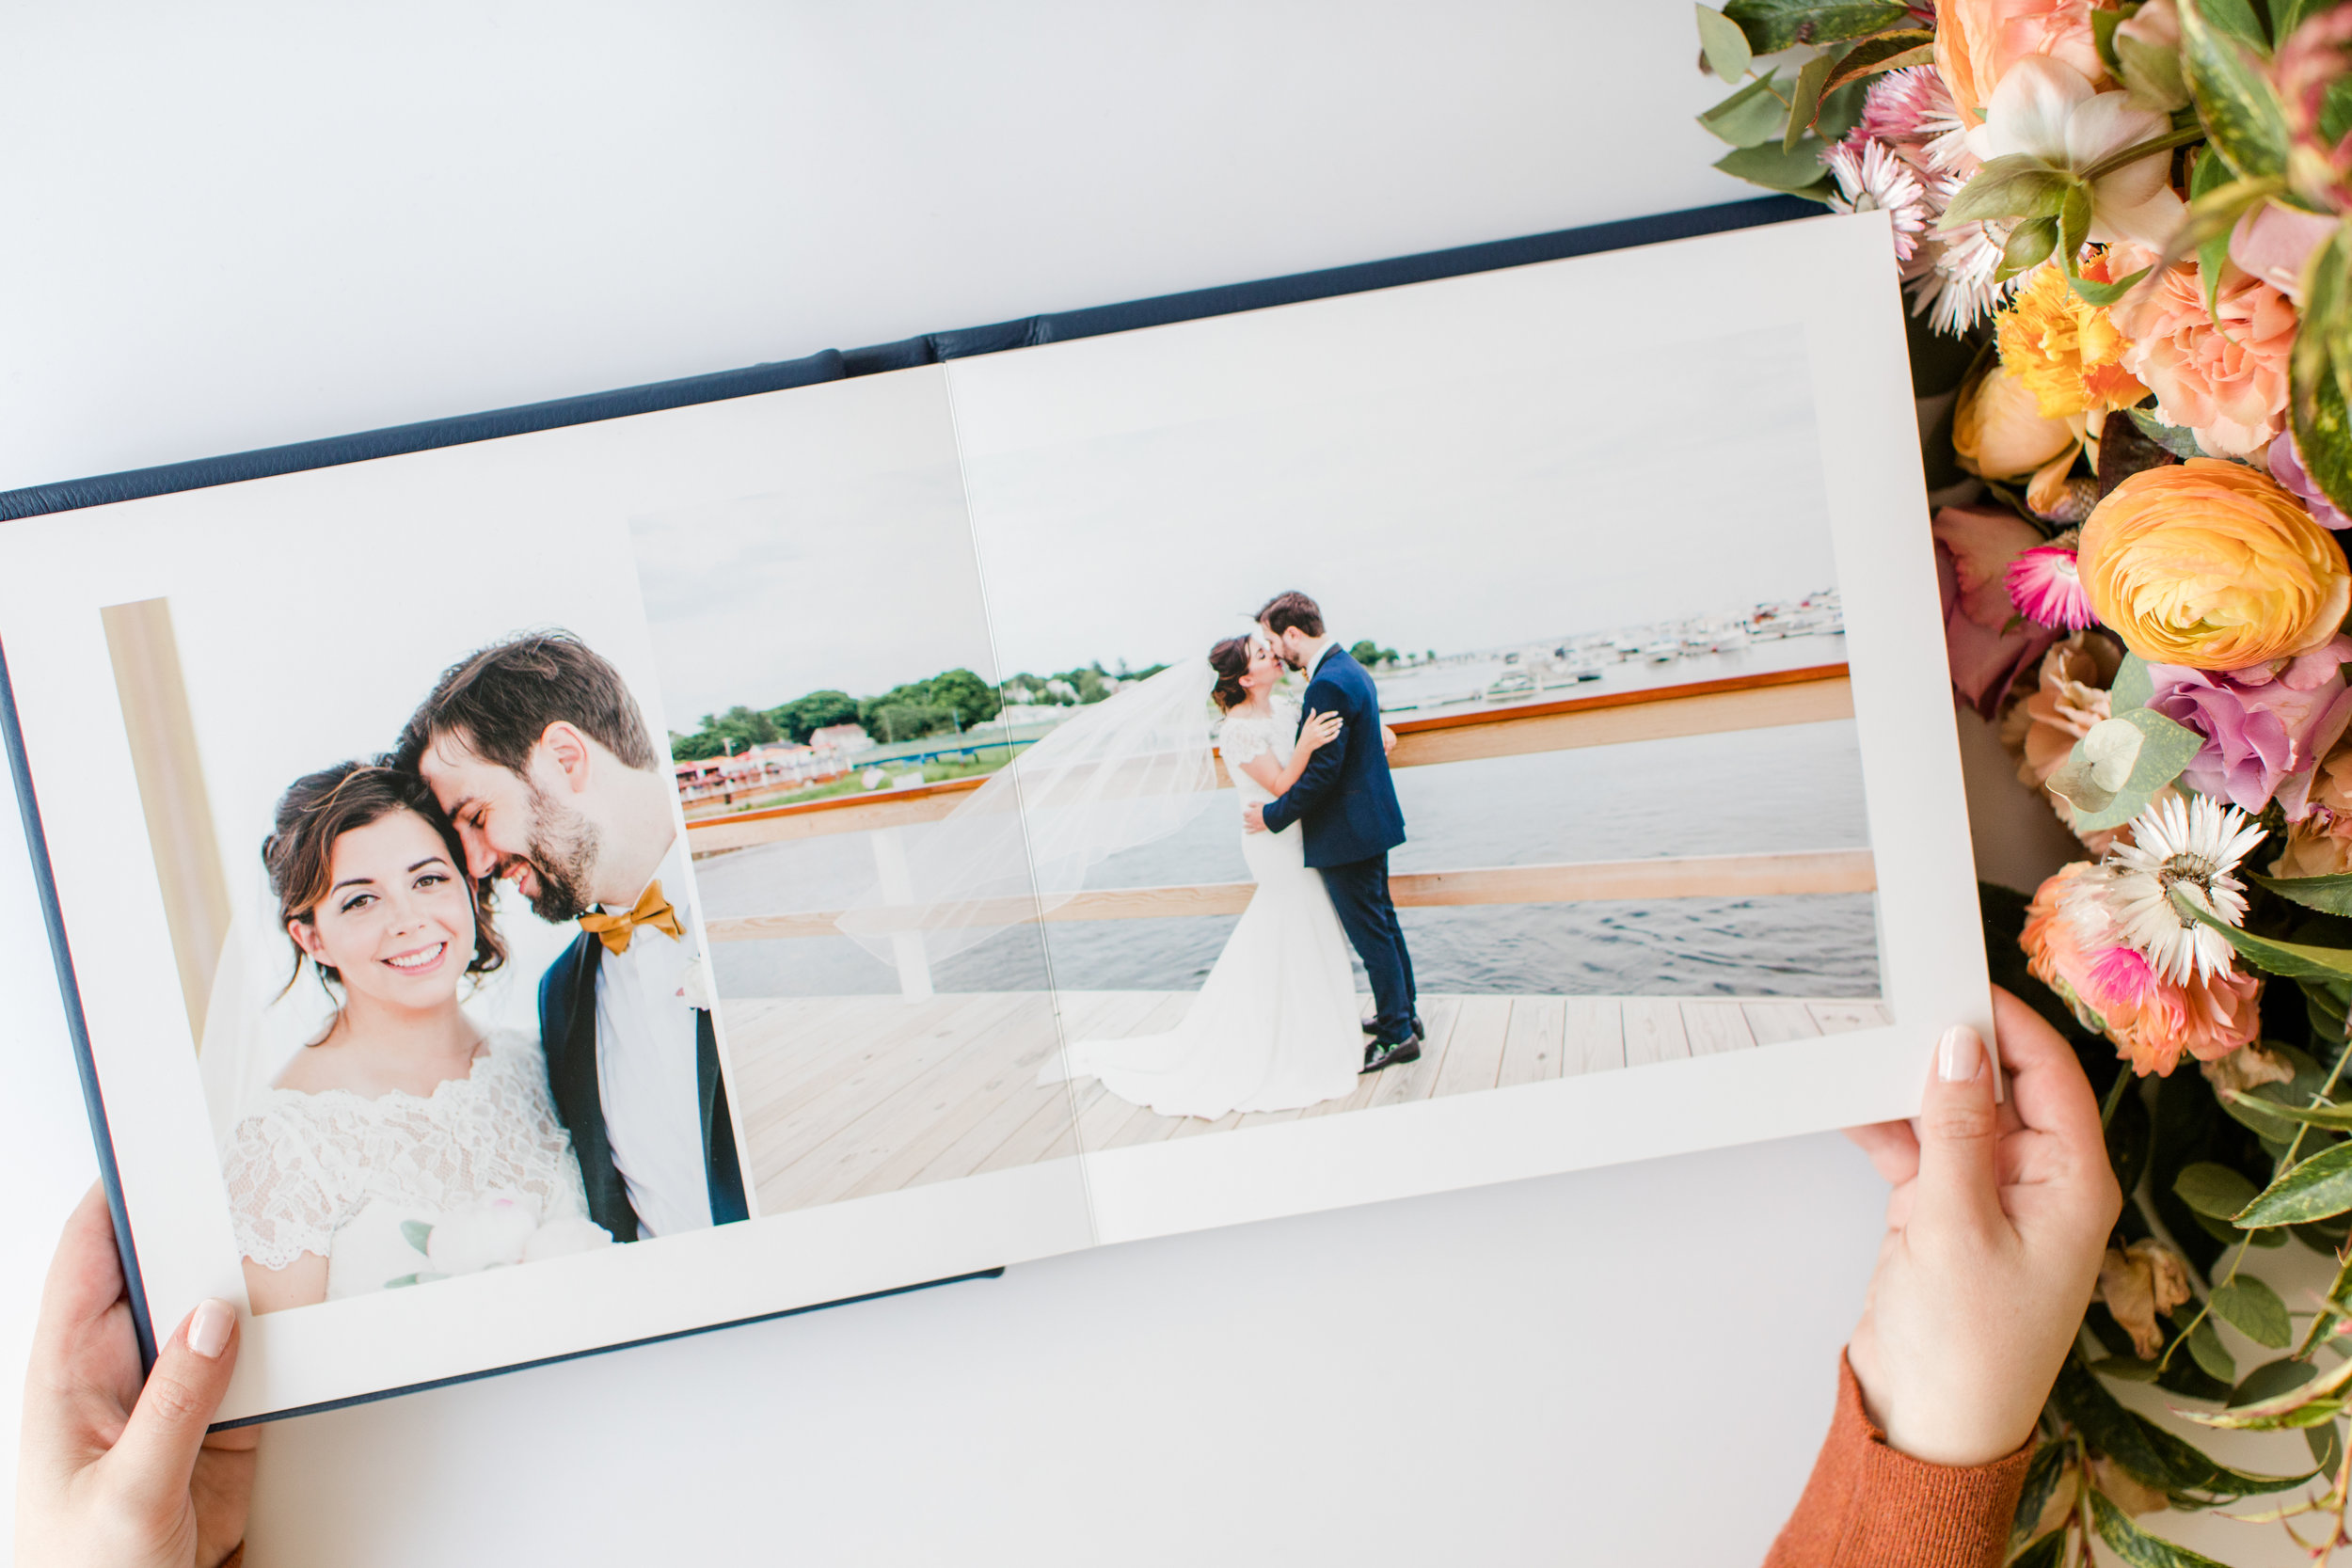 07. Heirloom Album Design +Print Delivery - You've invested in your wedding experience thus far… Time to make these memories stand the test of time.